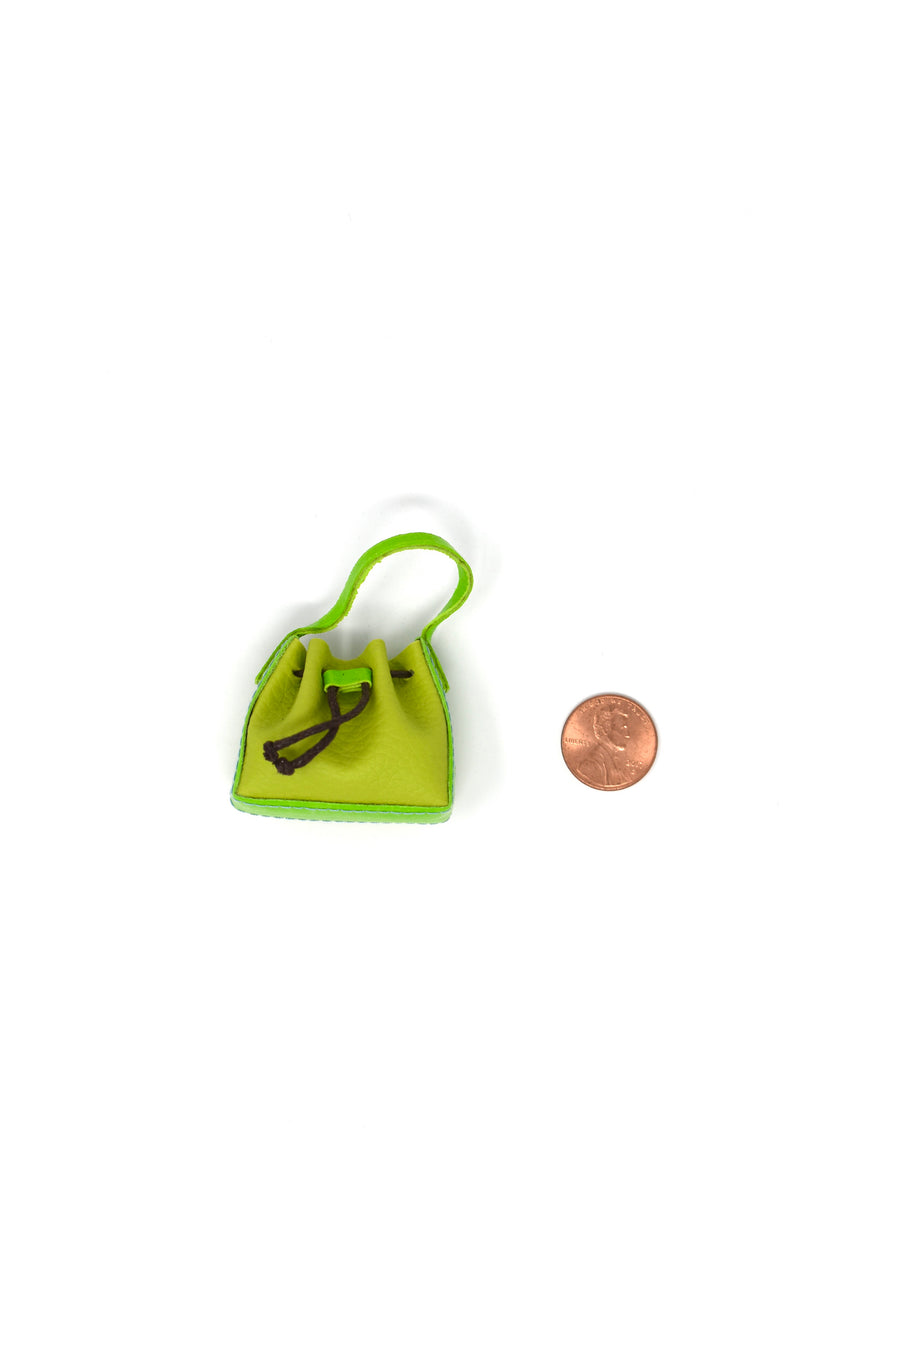 Tiny Green Purse